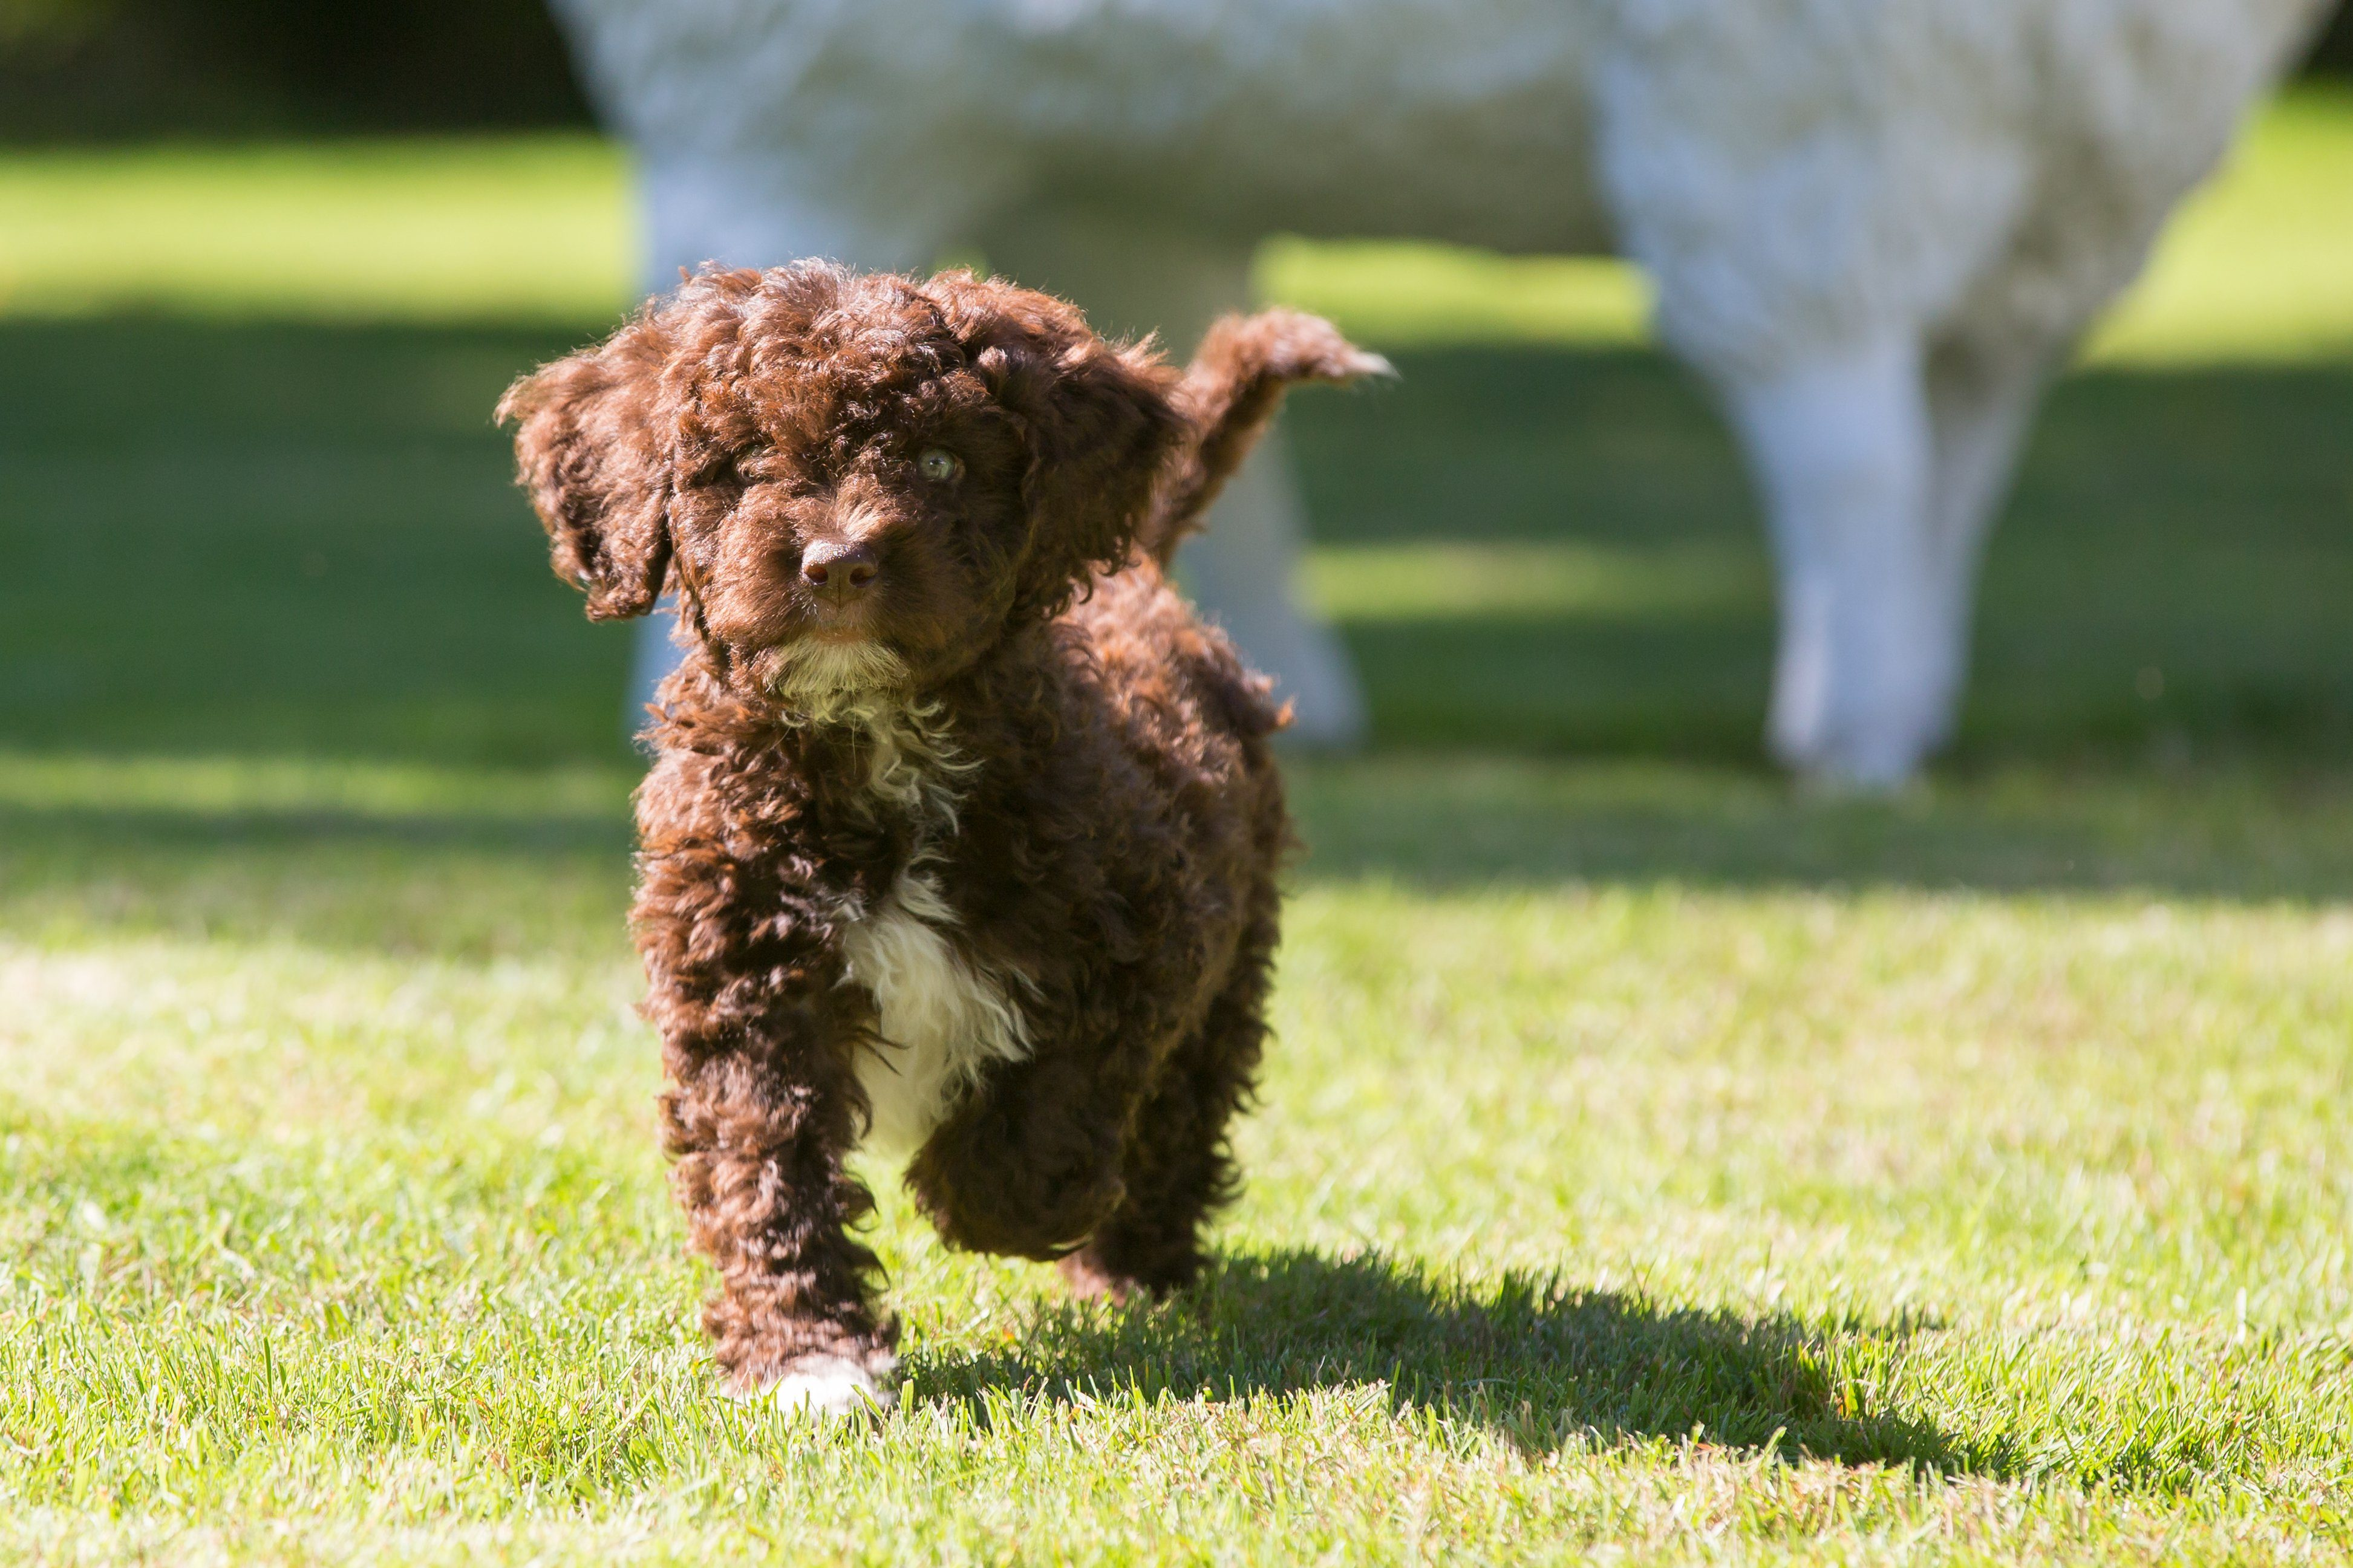 Cute spanish water dog puppy walking on green grass towards the camera in a garden